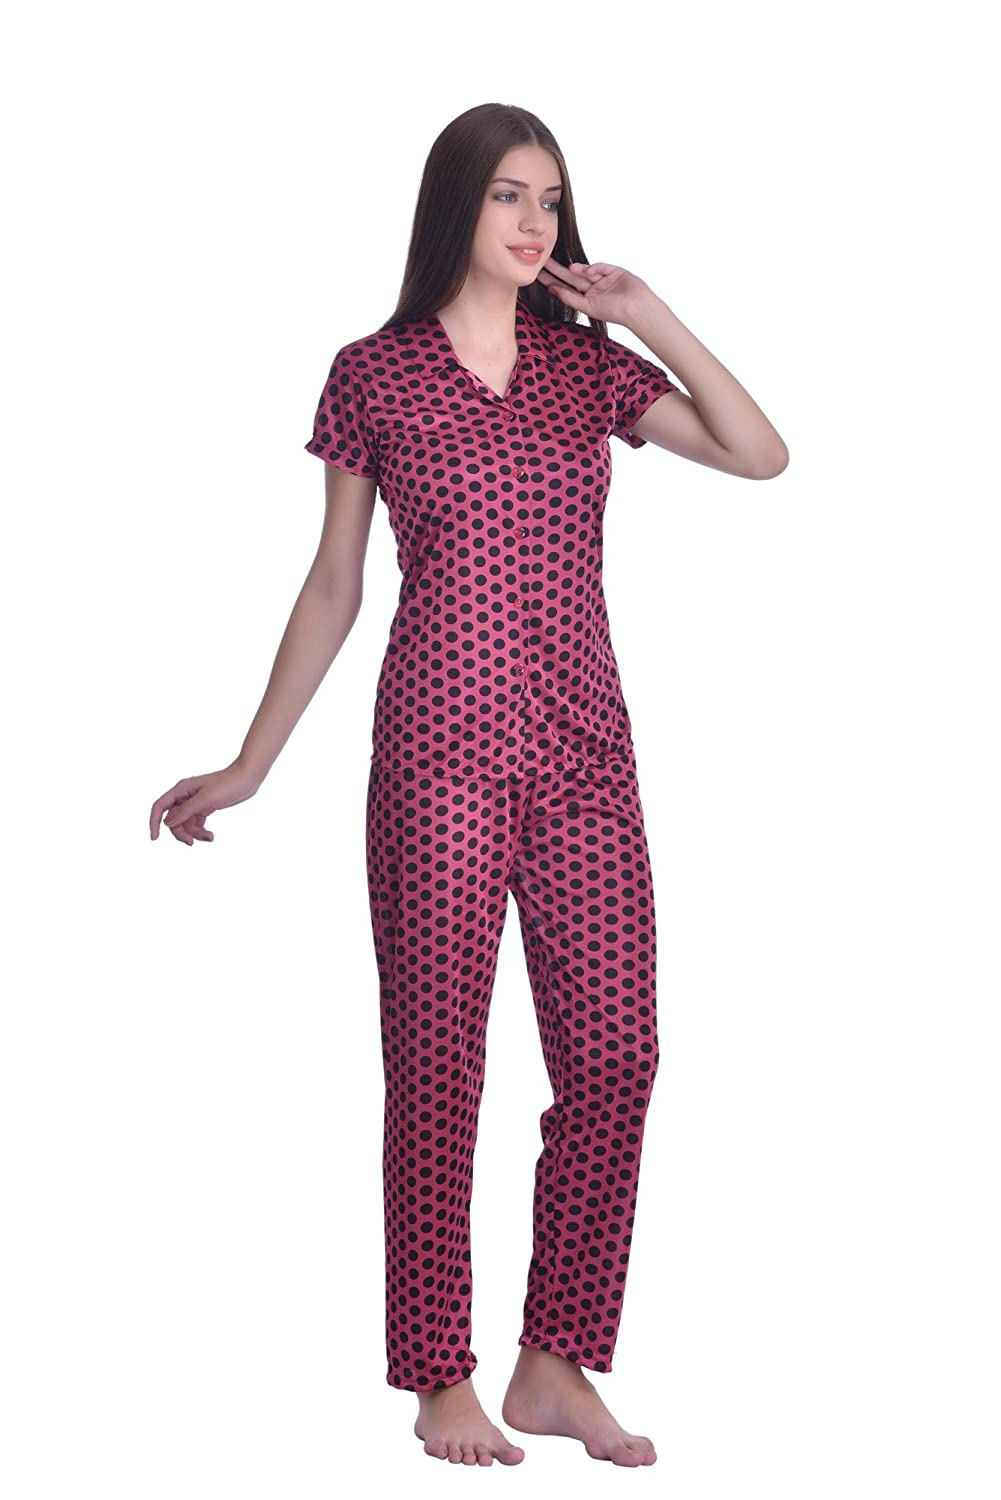 79a4a363f58 Adonia Women s Poly-knit Lycra Pink Polka Dot Shirt Night Suit  Amazon.in   Clothing   Accessories